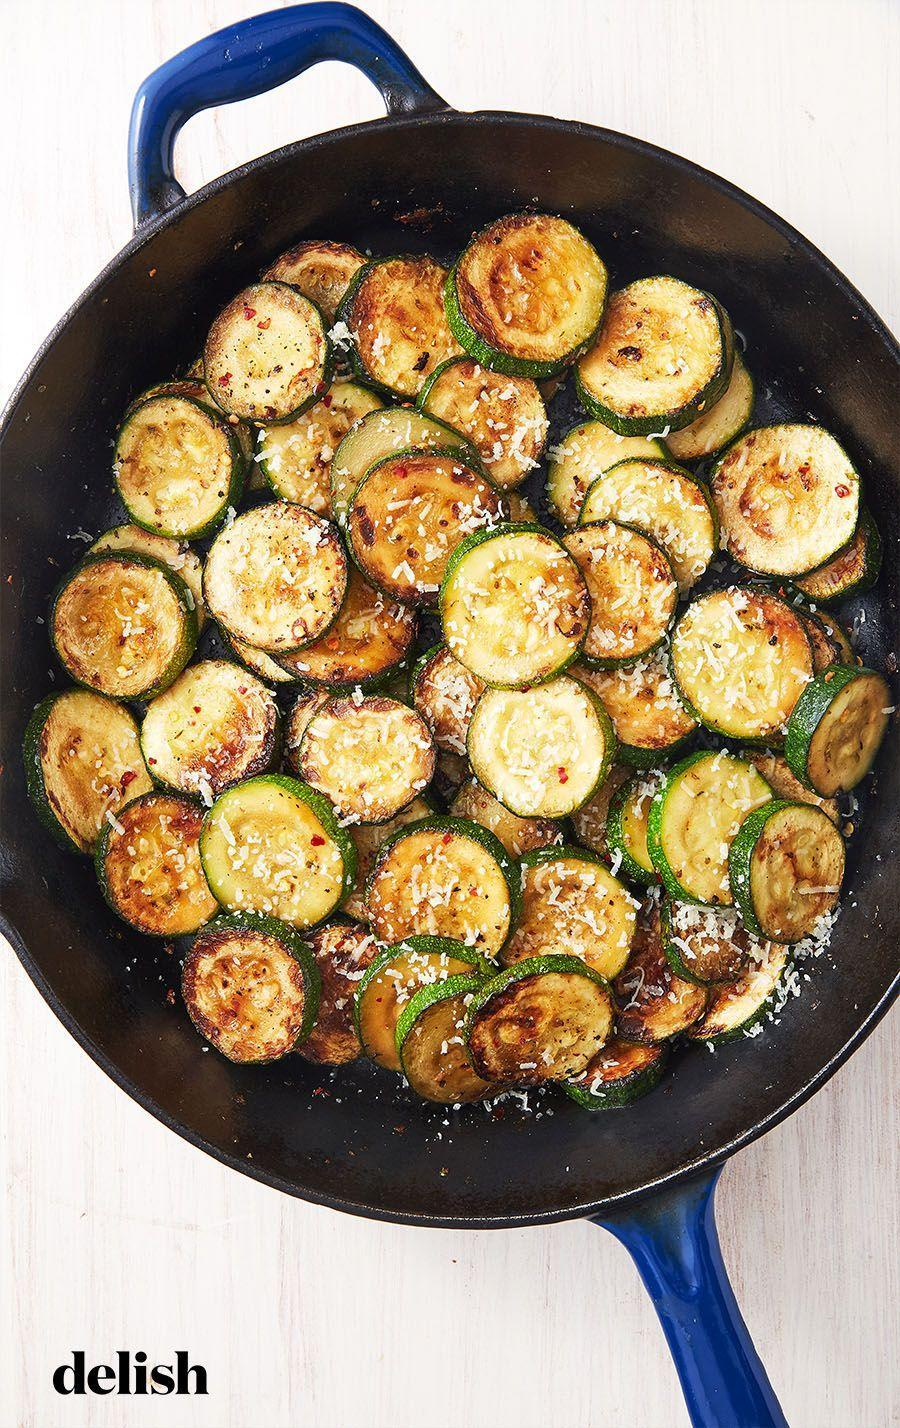 """<p>I'll eat anything doused in garlic and parmesan. </p><p>Get the recipe from <a href=""""https://www.delish.com/cooking/recipe-ideas/a28091519/sauteed-zucchini-recipe/"""" rel=""""nofollow noopener"""" target=""""_blank"""" data-ylk=""""slk:Delish"""" class=""""link rapid-noclick-resp"""">Delish</a>.</p>"""